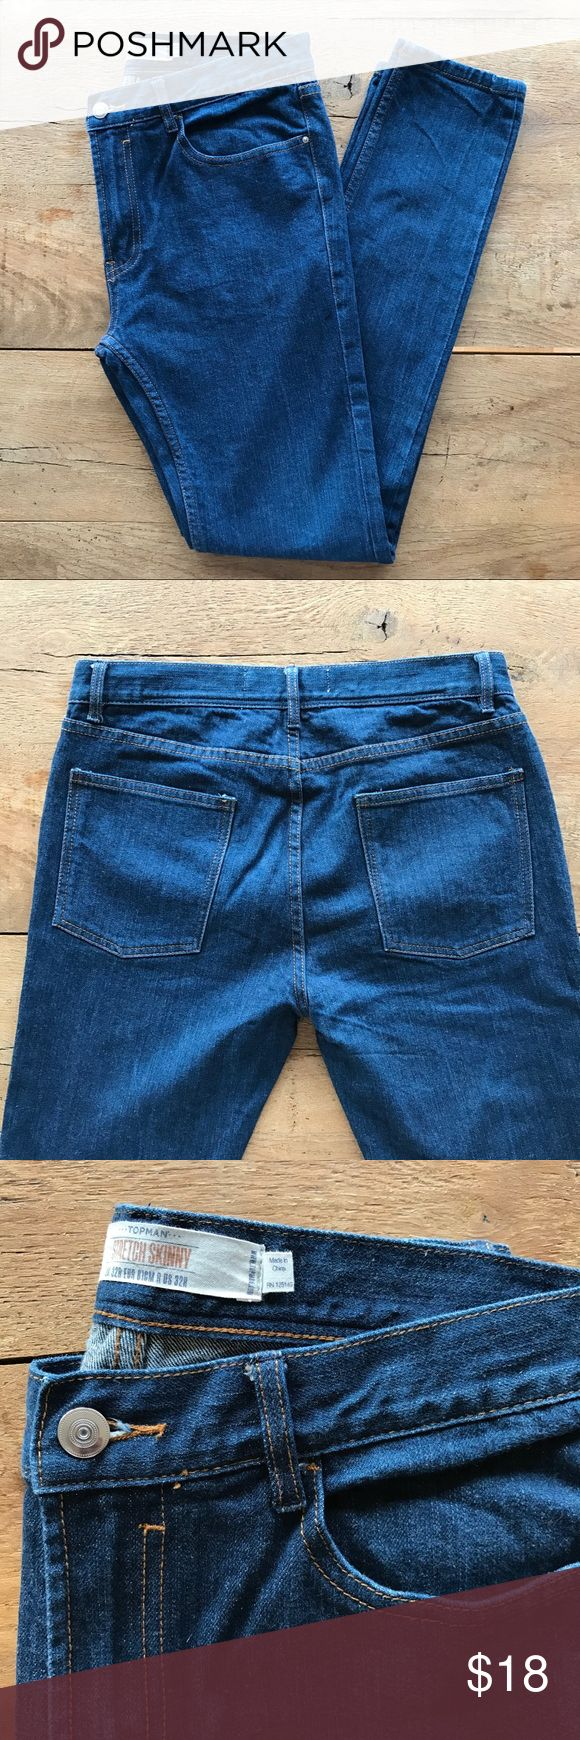 """Topman Stretch Skinny Jeans Topman """"stretch skinny"""" jeans. 31"""" inseam, 12"""" ankle opening, 10"""" rise, zip fly. 99% cotton, 1% elastase. Great used condition. Topman Jeans Skinny"""